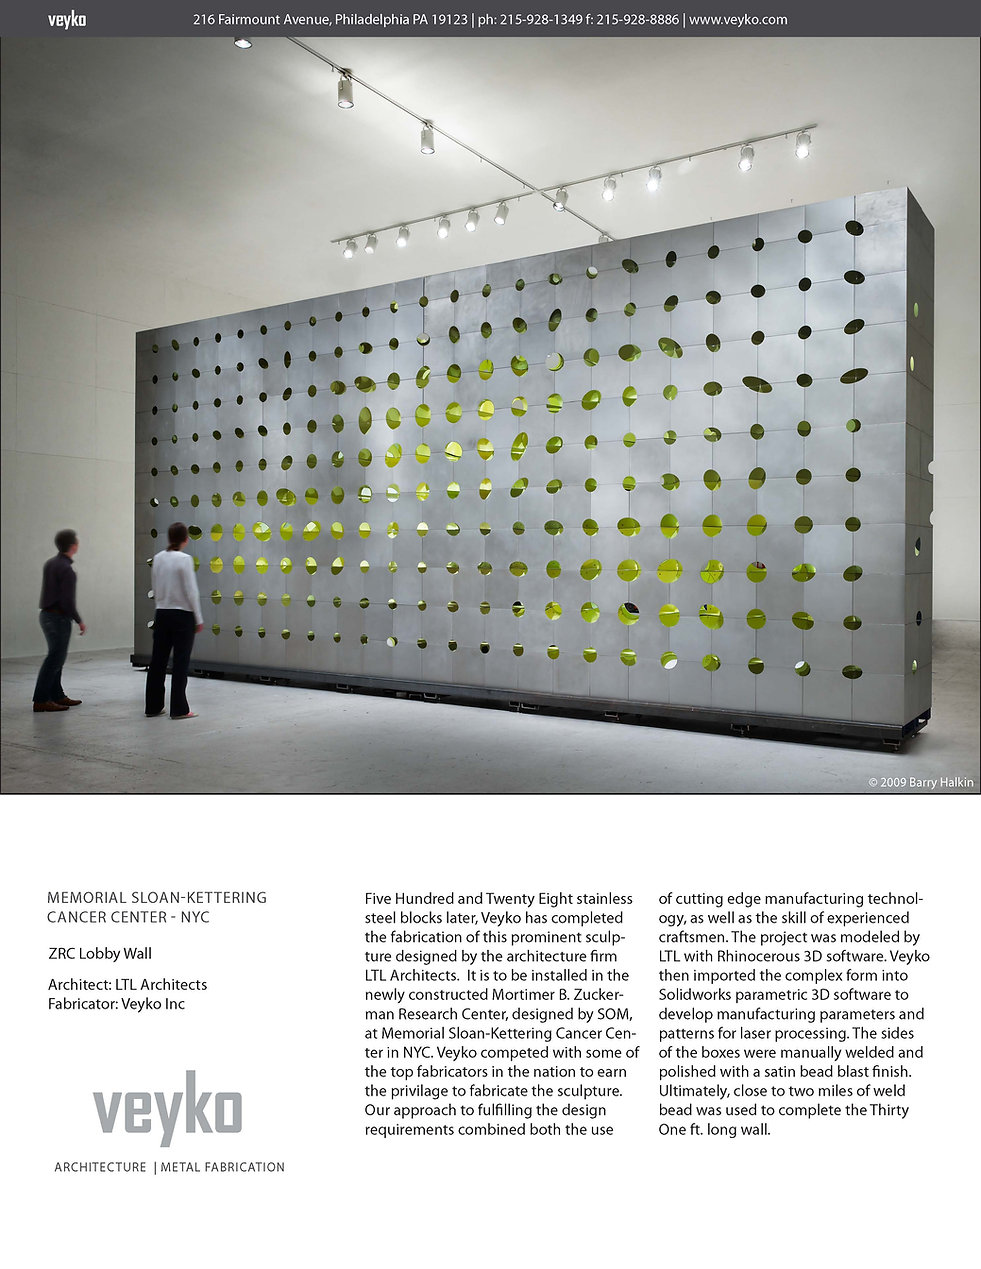 Issue 7 MSK Wall p1.jpg